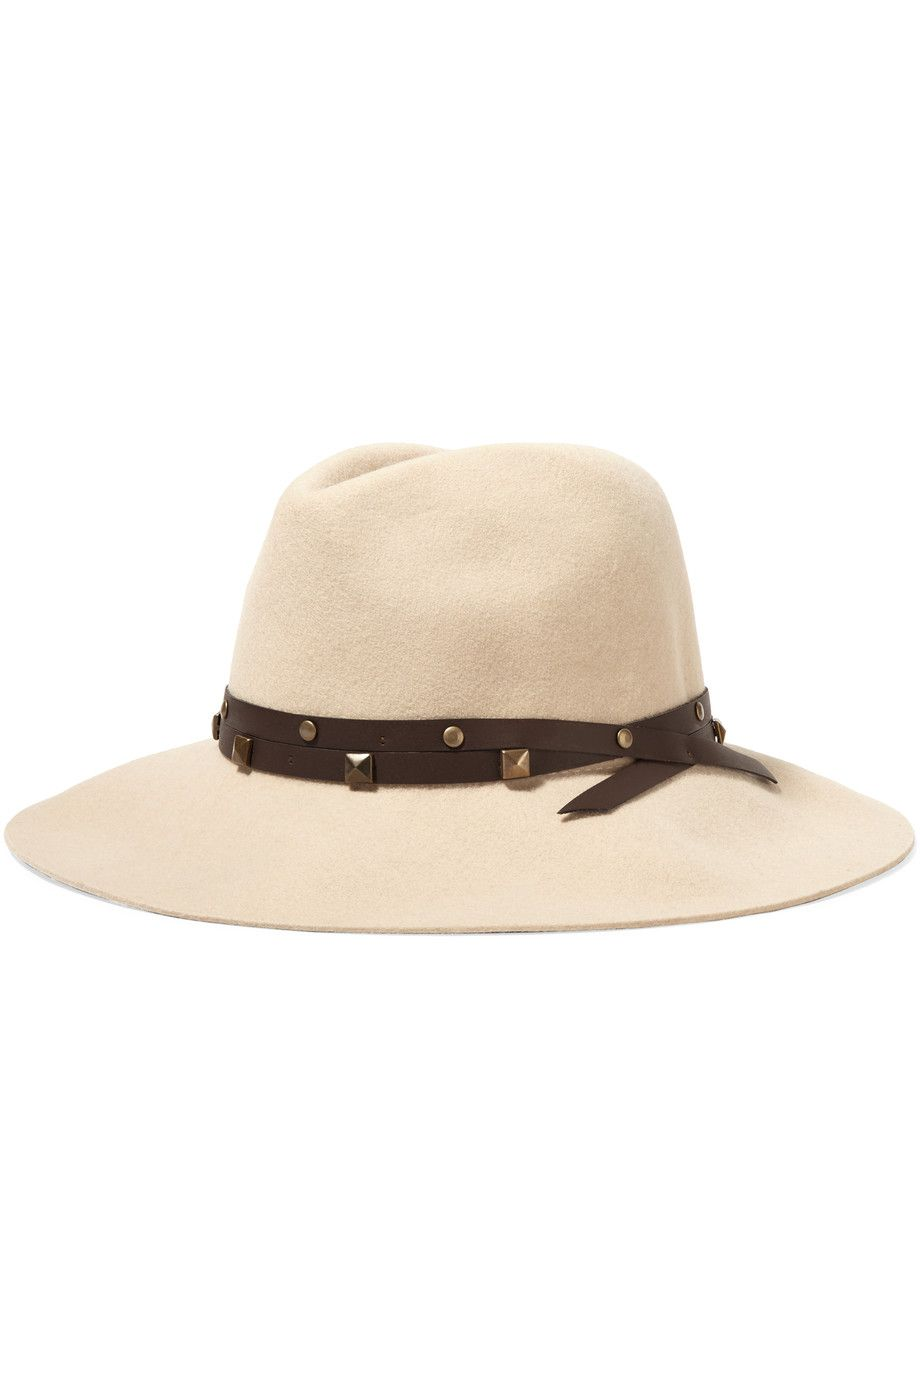 Shop on-sale Sensi Studio Studded leather-trimmed wool-felt fedora. Browse  other discount designer Hats   more on The Most Fashionable Fashion Outlet 03dd5548c6ce